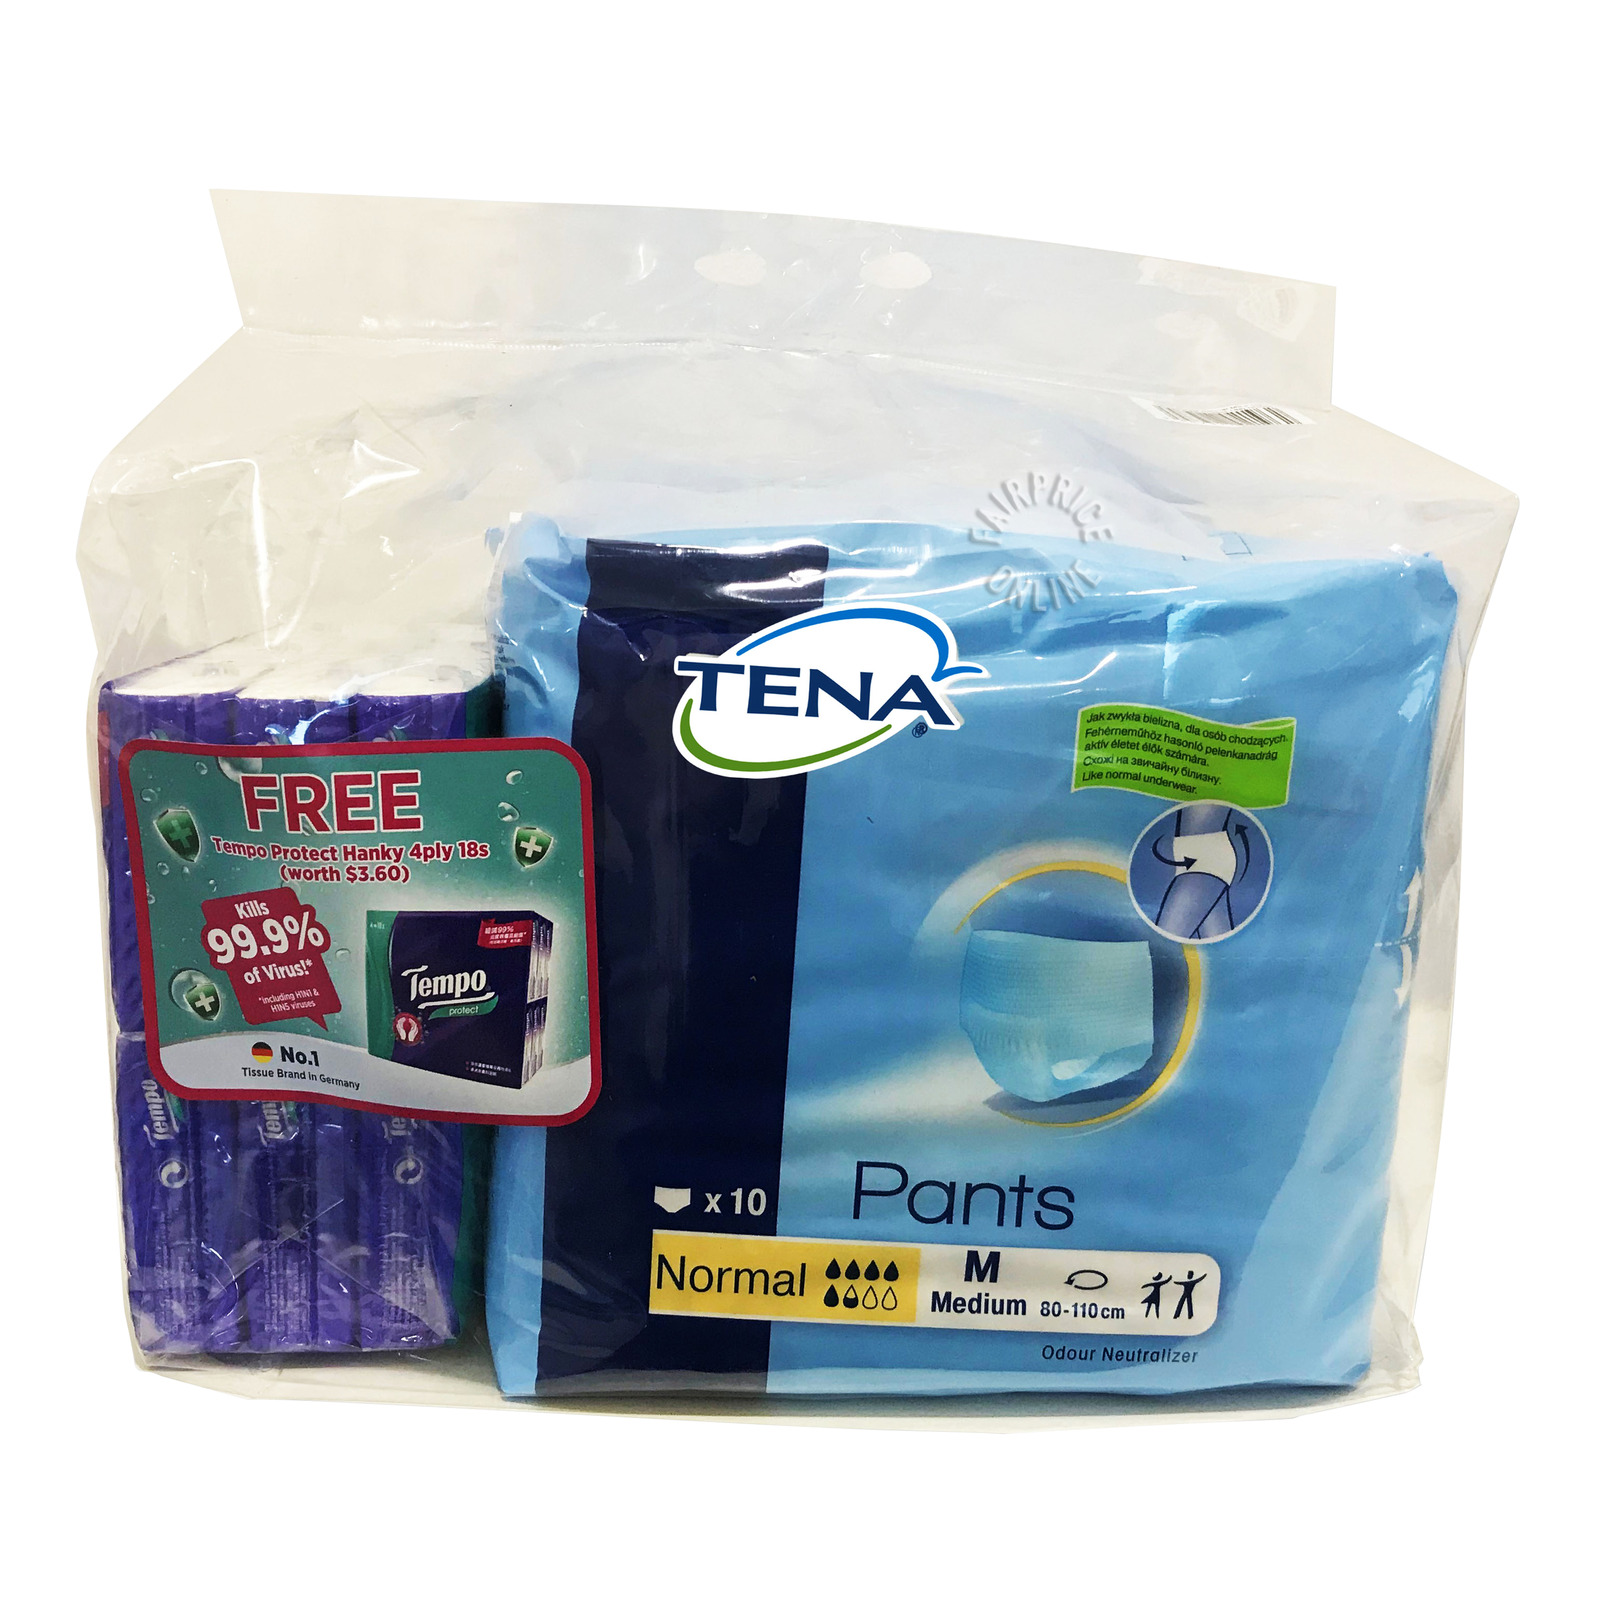 TENA Pants Normal Unisex Adult Diapers - M+FreeTissue